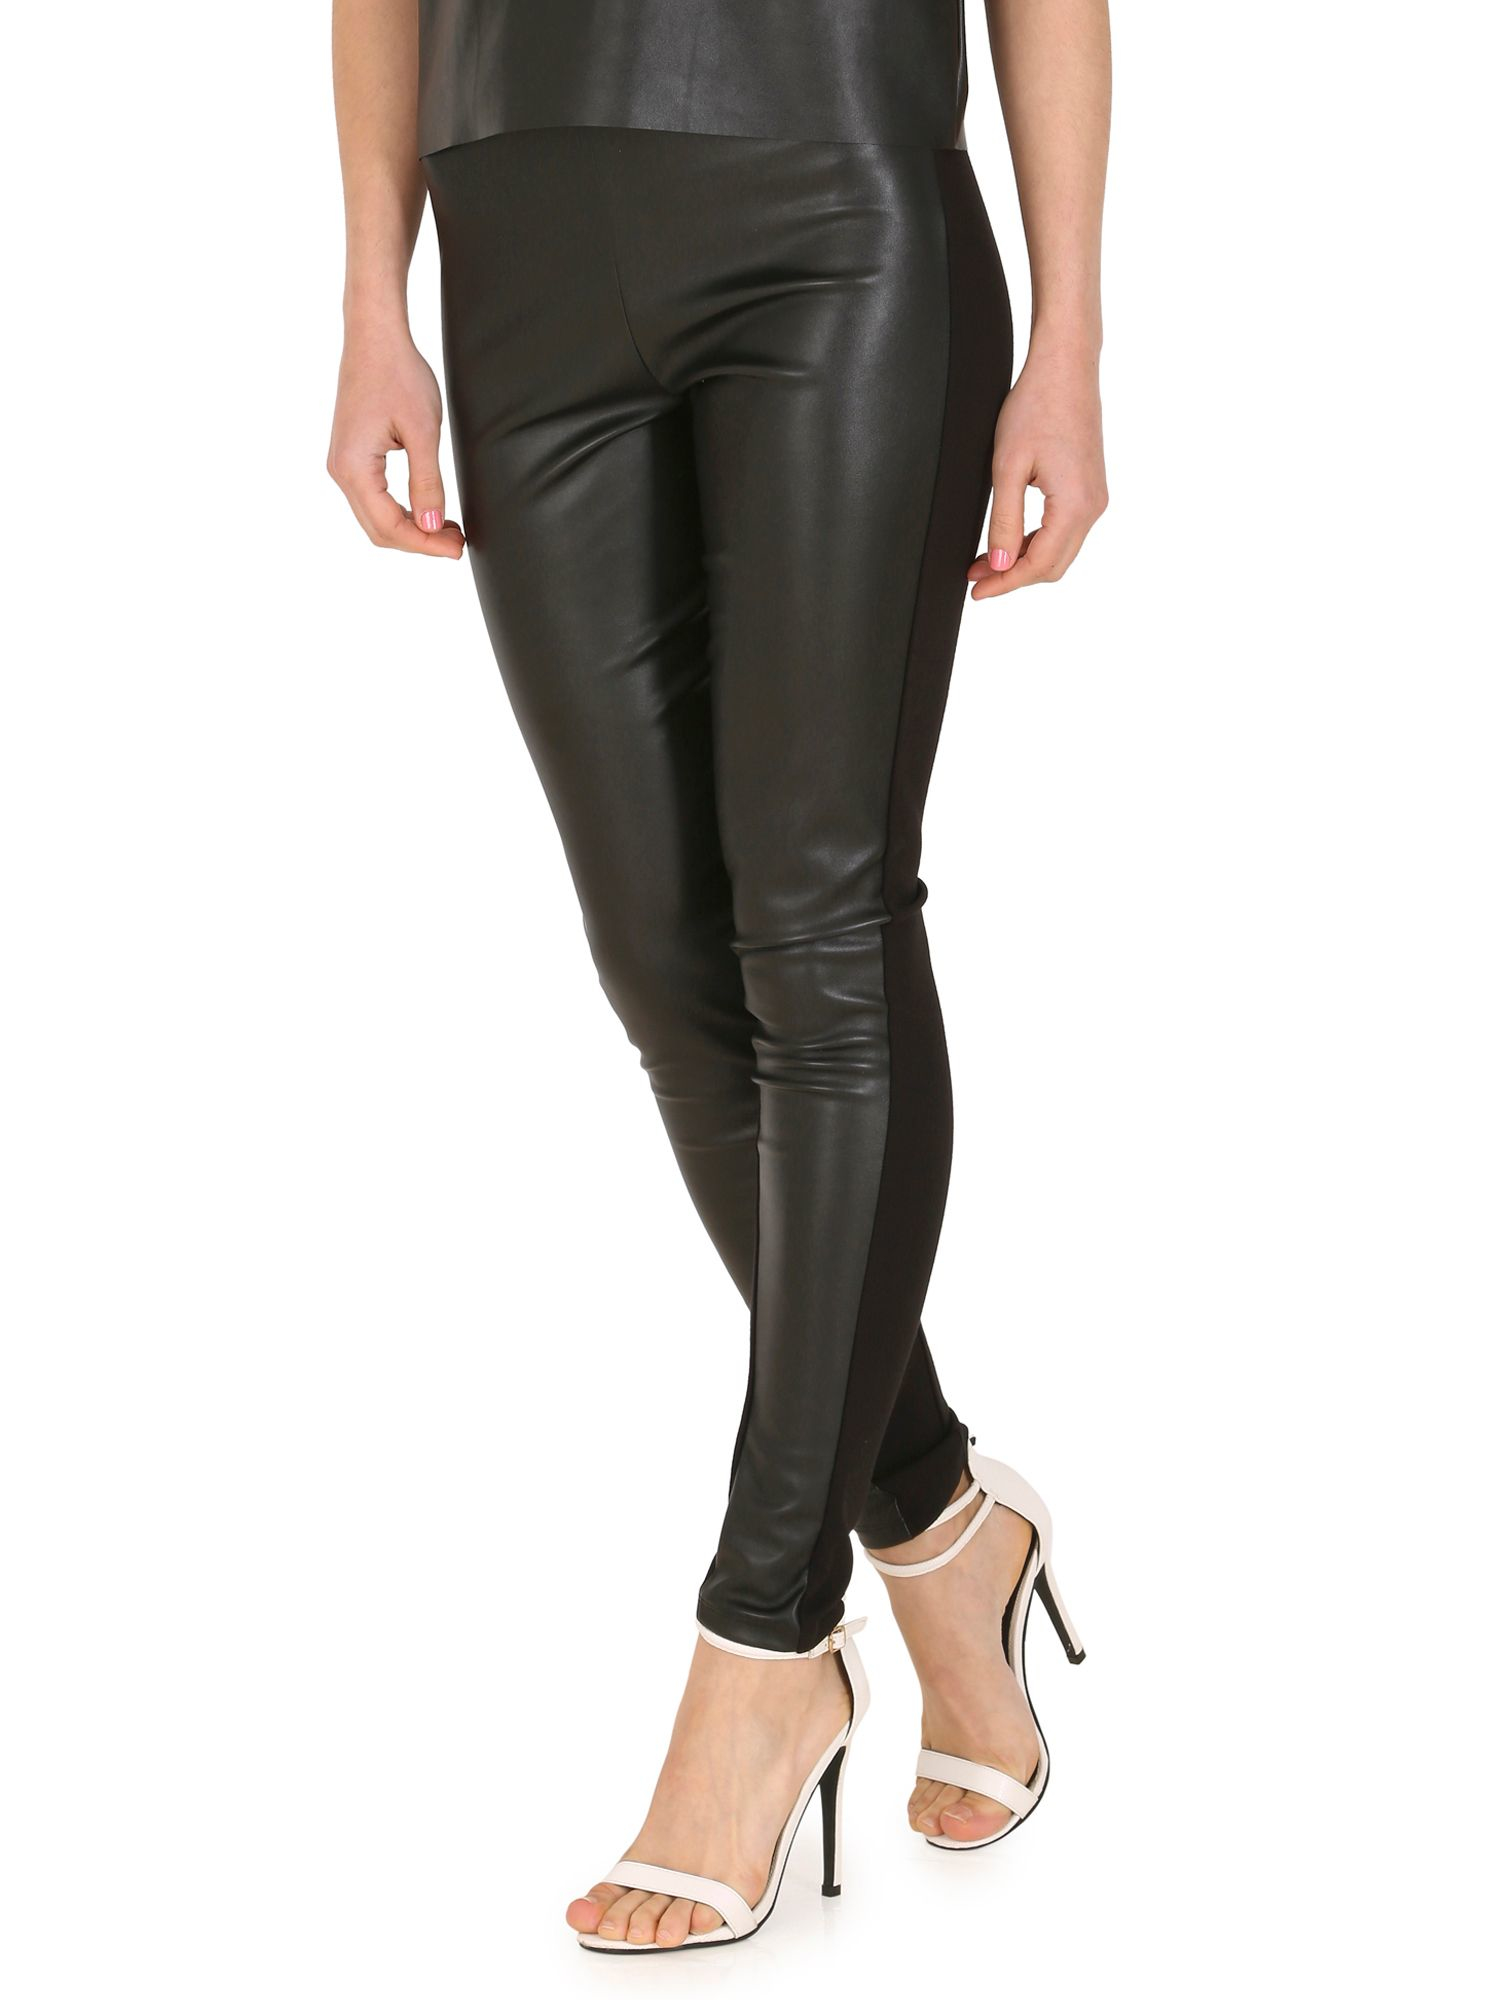 Plus Size Faux Leather Panel Ponte Leggings SPANX Plus Size Faux Leather Panel Ponte Leggings. $ $ (40% Off) Be the First to Write a Review. SPANX Plus Size Faux Leather Panel Ponte Leggings. $ $ (40% Off) Be the First to Write a Review. Color.